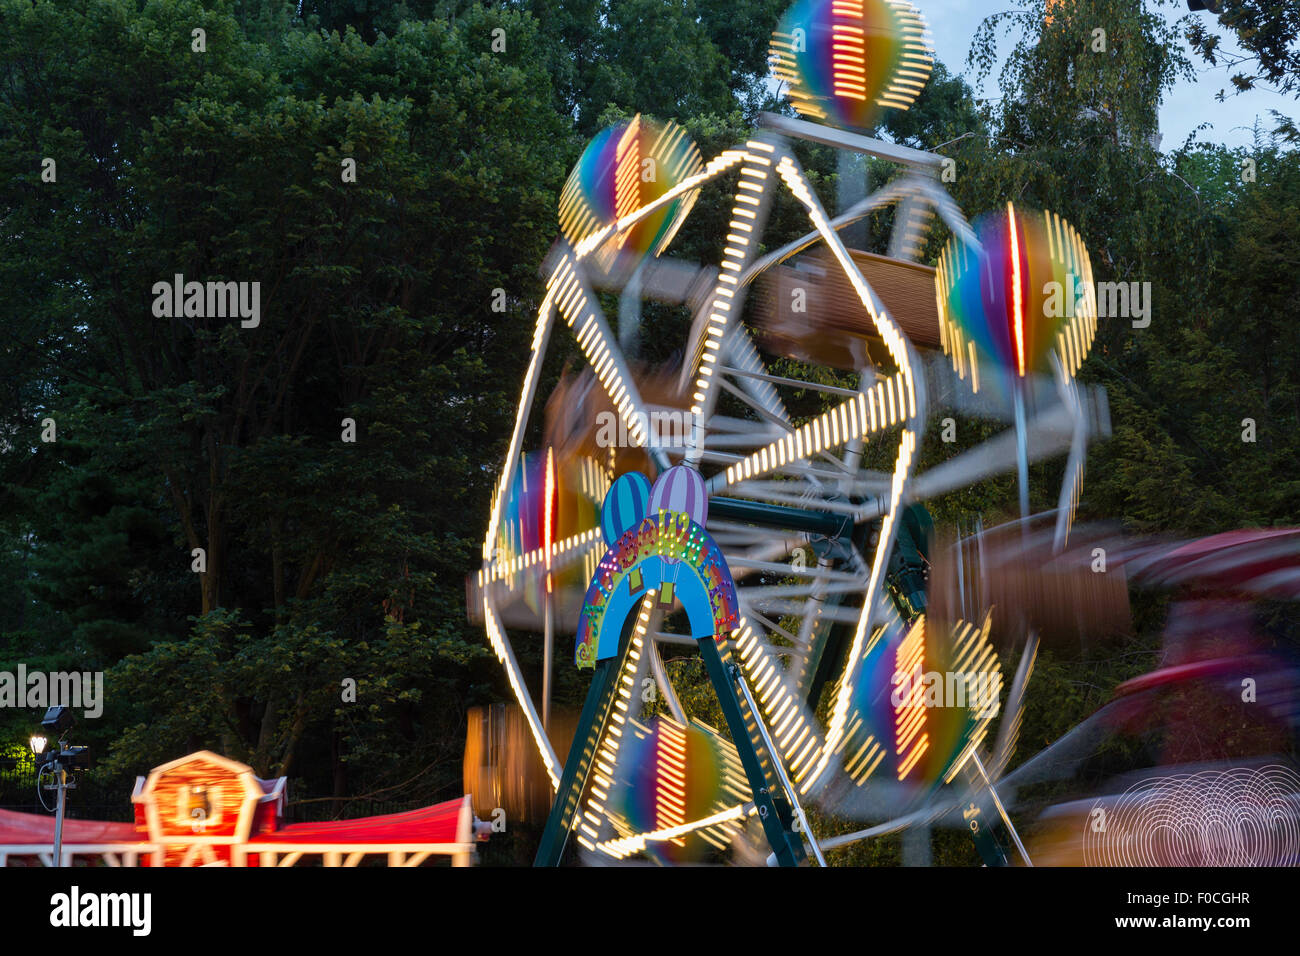 Victorian Gardens, Carnival Rides In Central Park, NYC